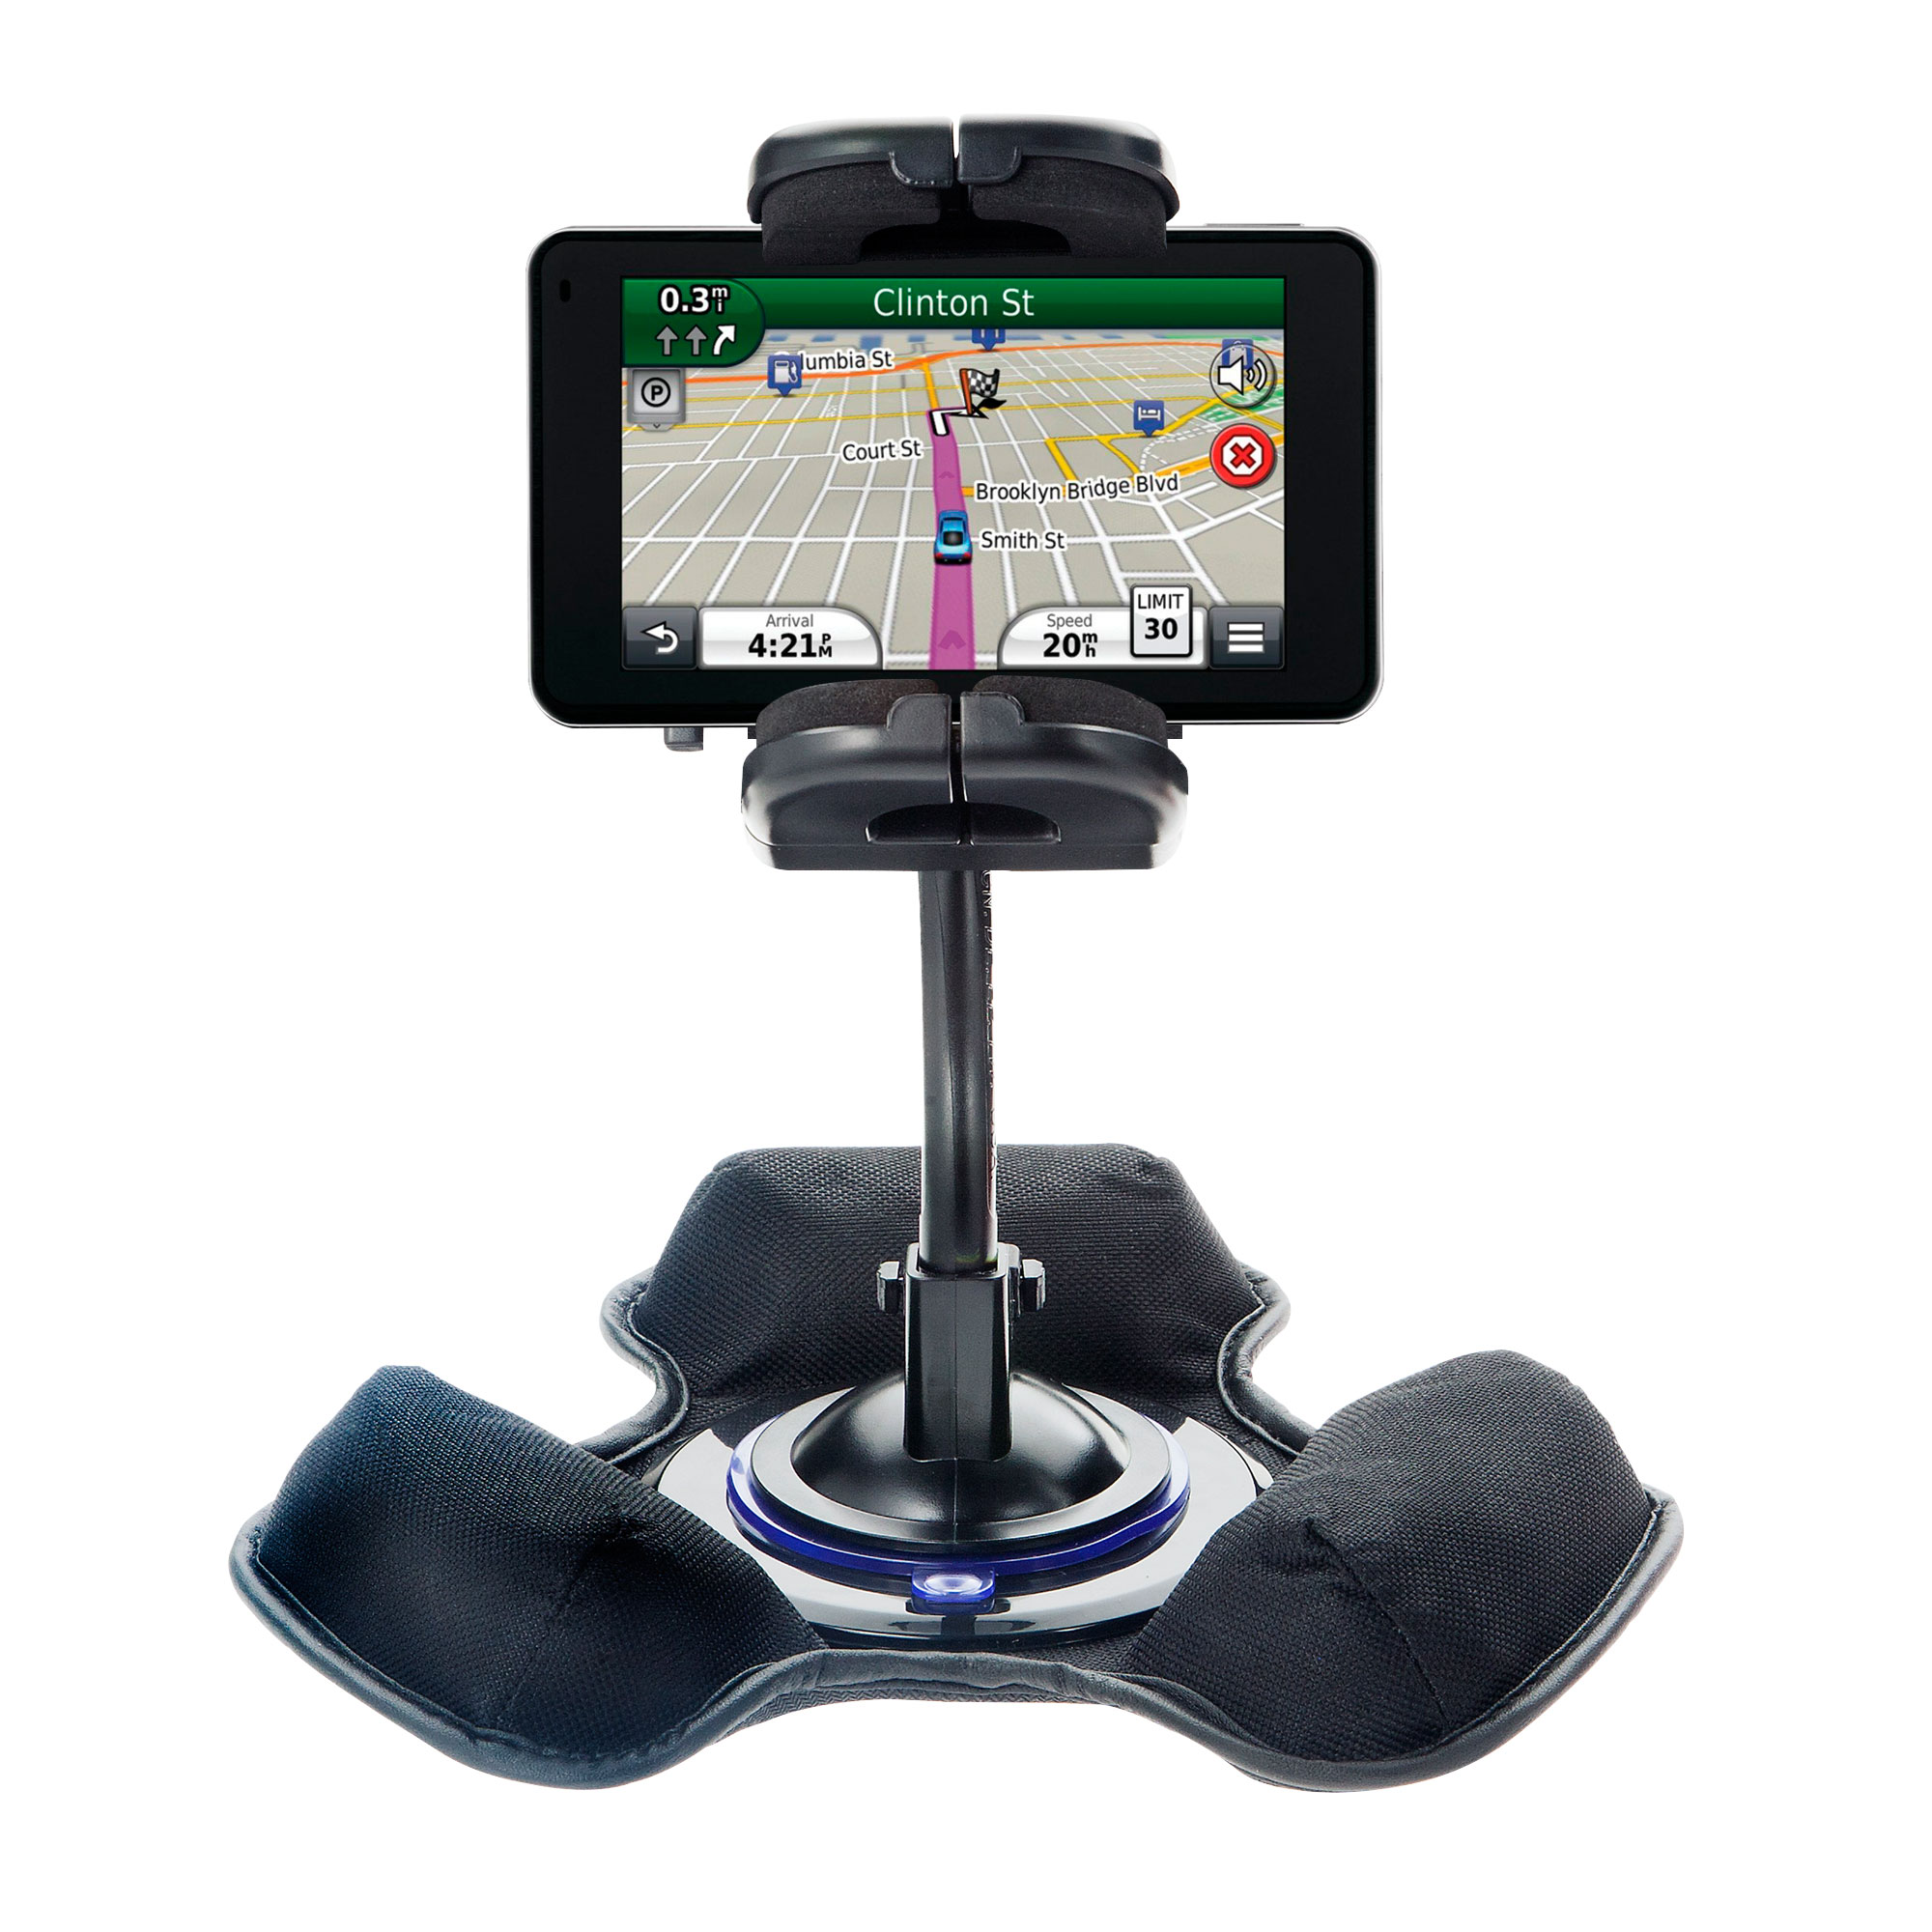 Car / Truck Vehicle Holder Mounting System for Garmin Nuvi 3450 3450LM Includes Unique Flexible Windshield Suction and Universal Dashboard Mount Options